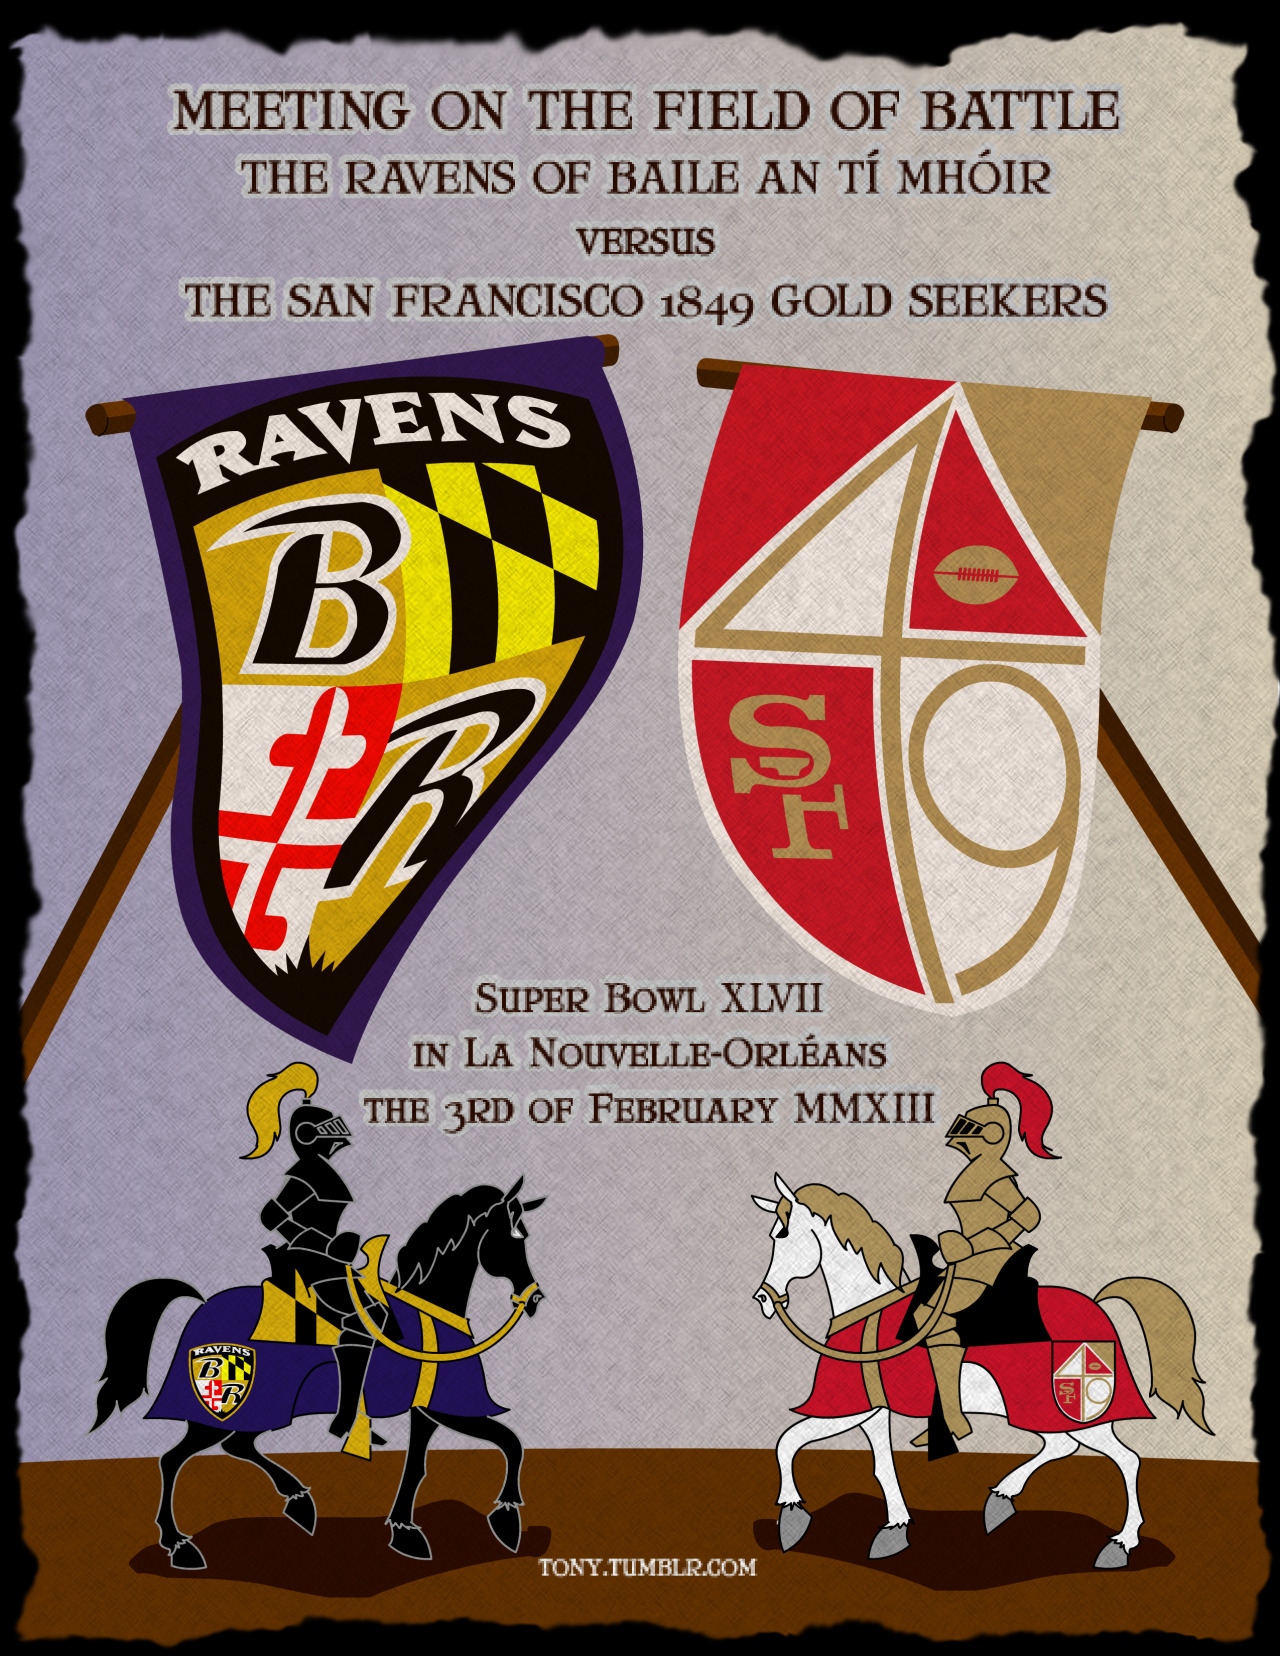 thetickr:  eatsleepdraw:  Super Bowl XLVII  Great medieval Super Bowl poster from tony.tumblr.com  Who are you going with!:) SF or Ravens?